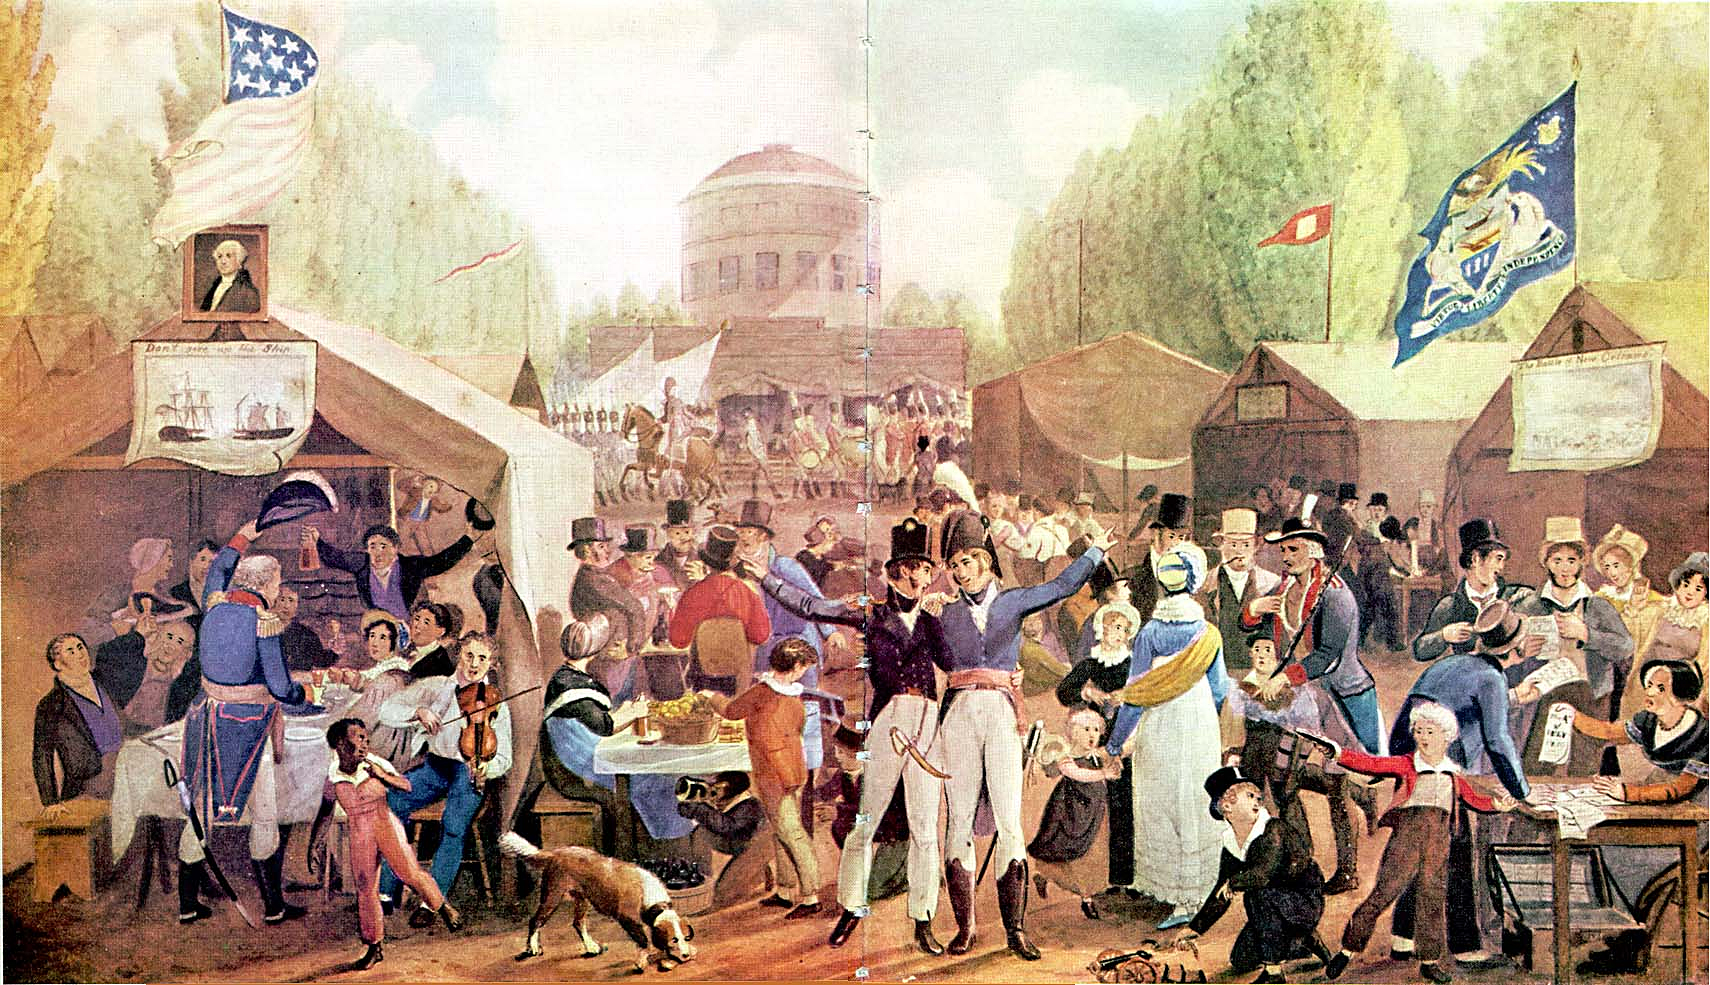 This picture is a painting by John Lewis Krimmel showing a July 4 celebration in 1819